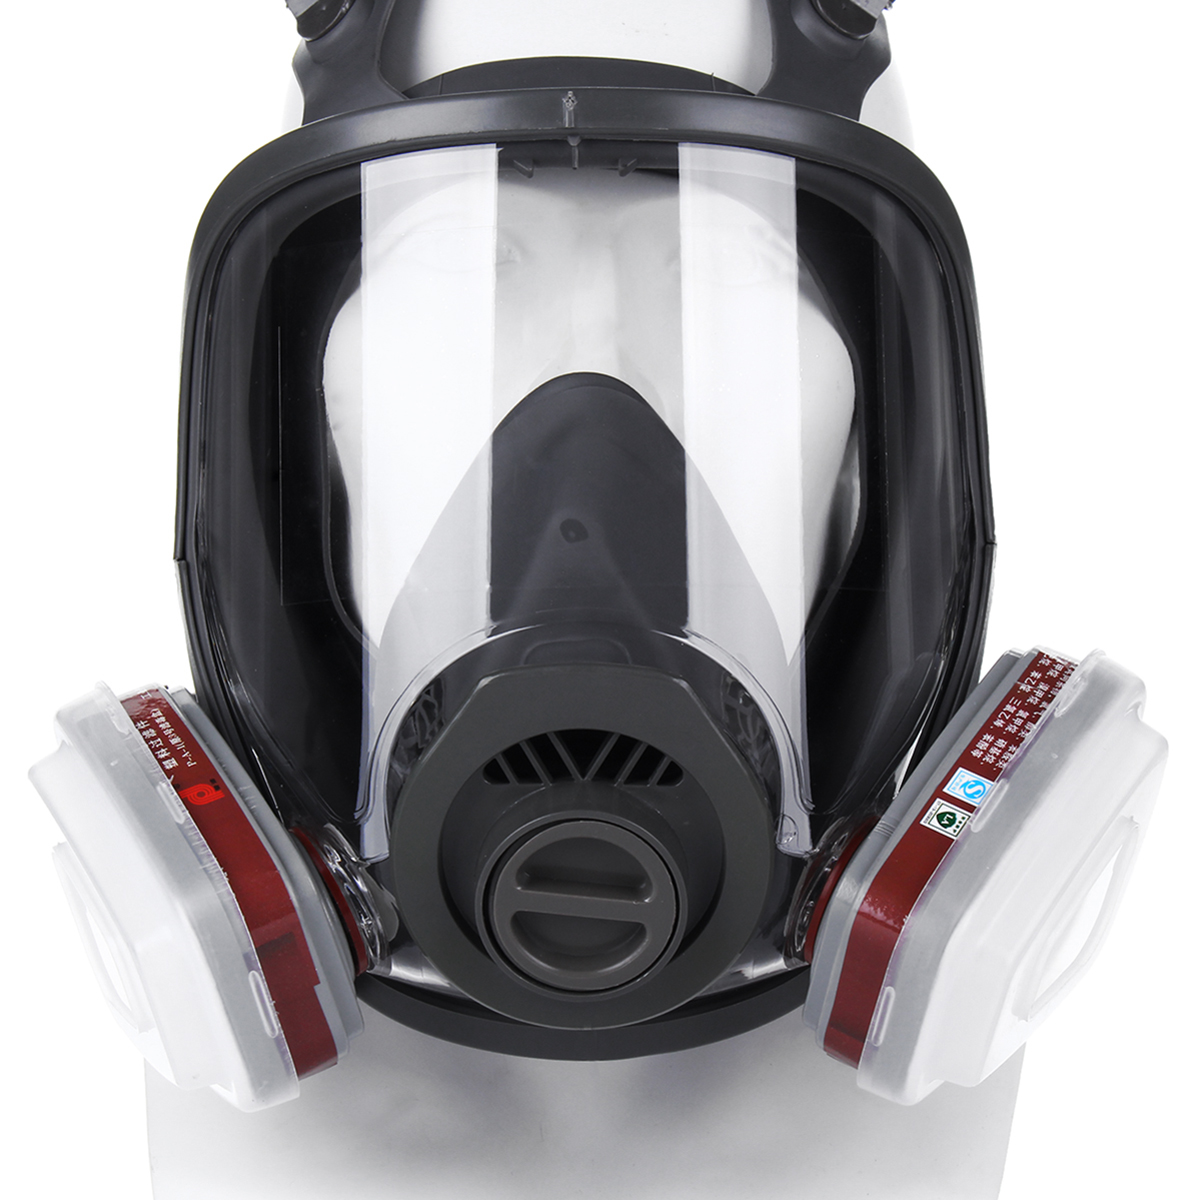 15 in 1 Full Face Gas Mask Facepiece Respirator Painting Spraying Mask 6800 Dust 20